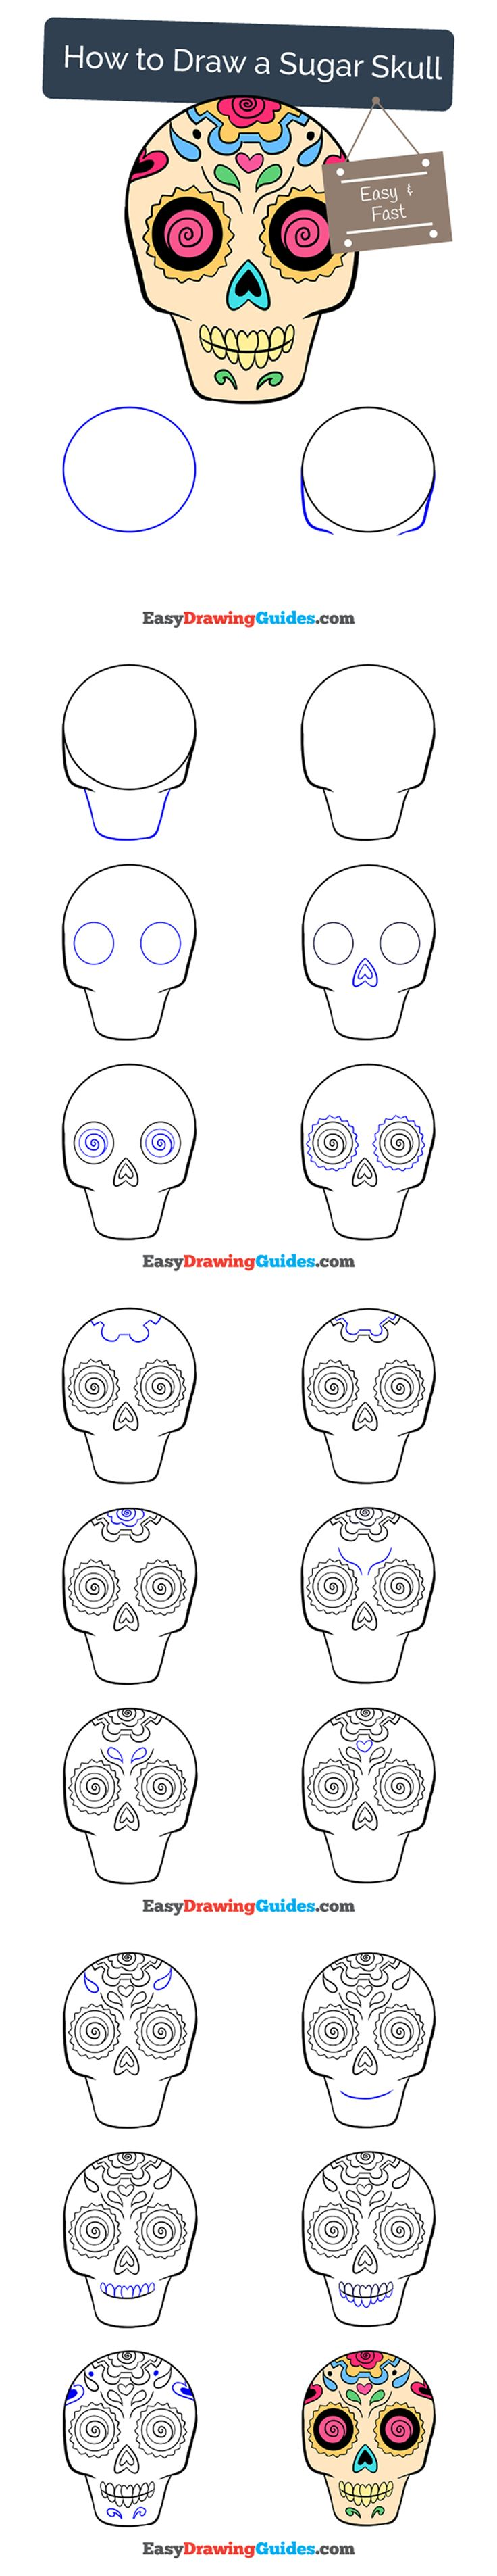 Learn How to Draw a Sugar Skull (or calavera): Easy Step-by-Step Drawing Tutorial for Kids and Beginners. #sugarskull #calavera #drawing #tutorial. See the full tutorial at https://easydrawingguides.com/how-to-draw-a-sugar-skull/